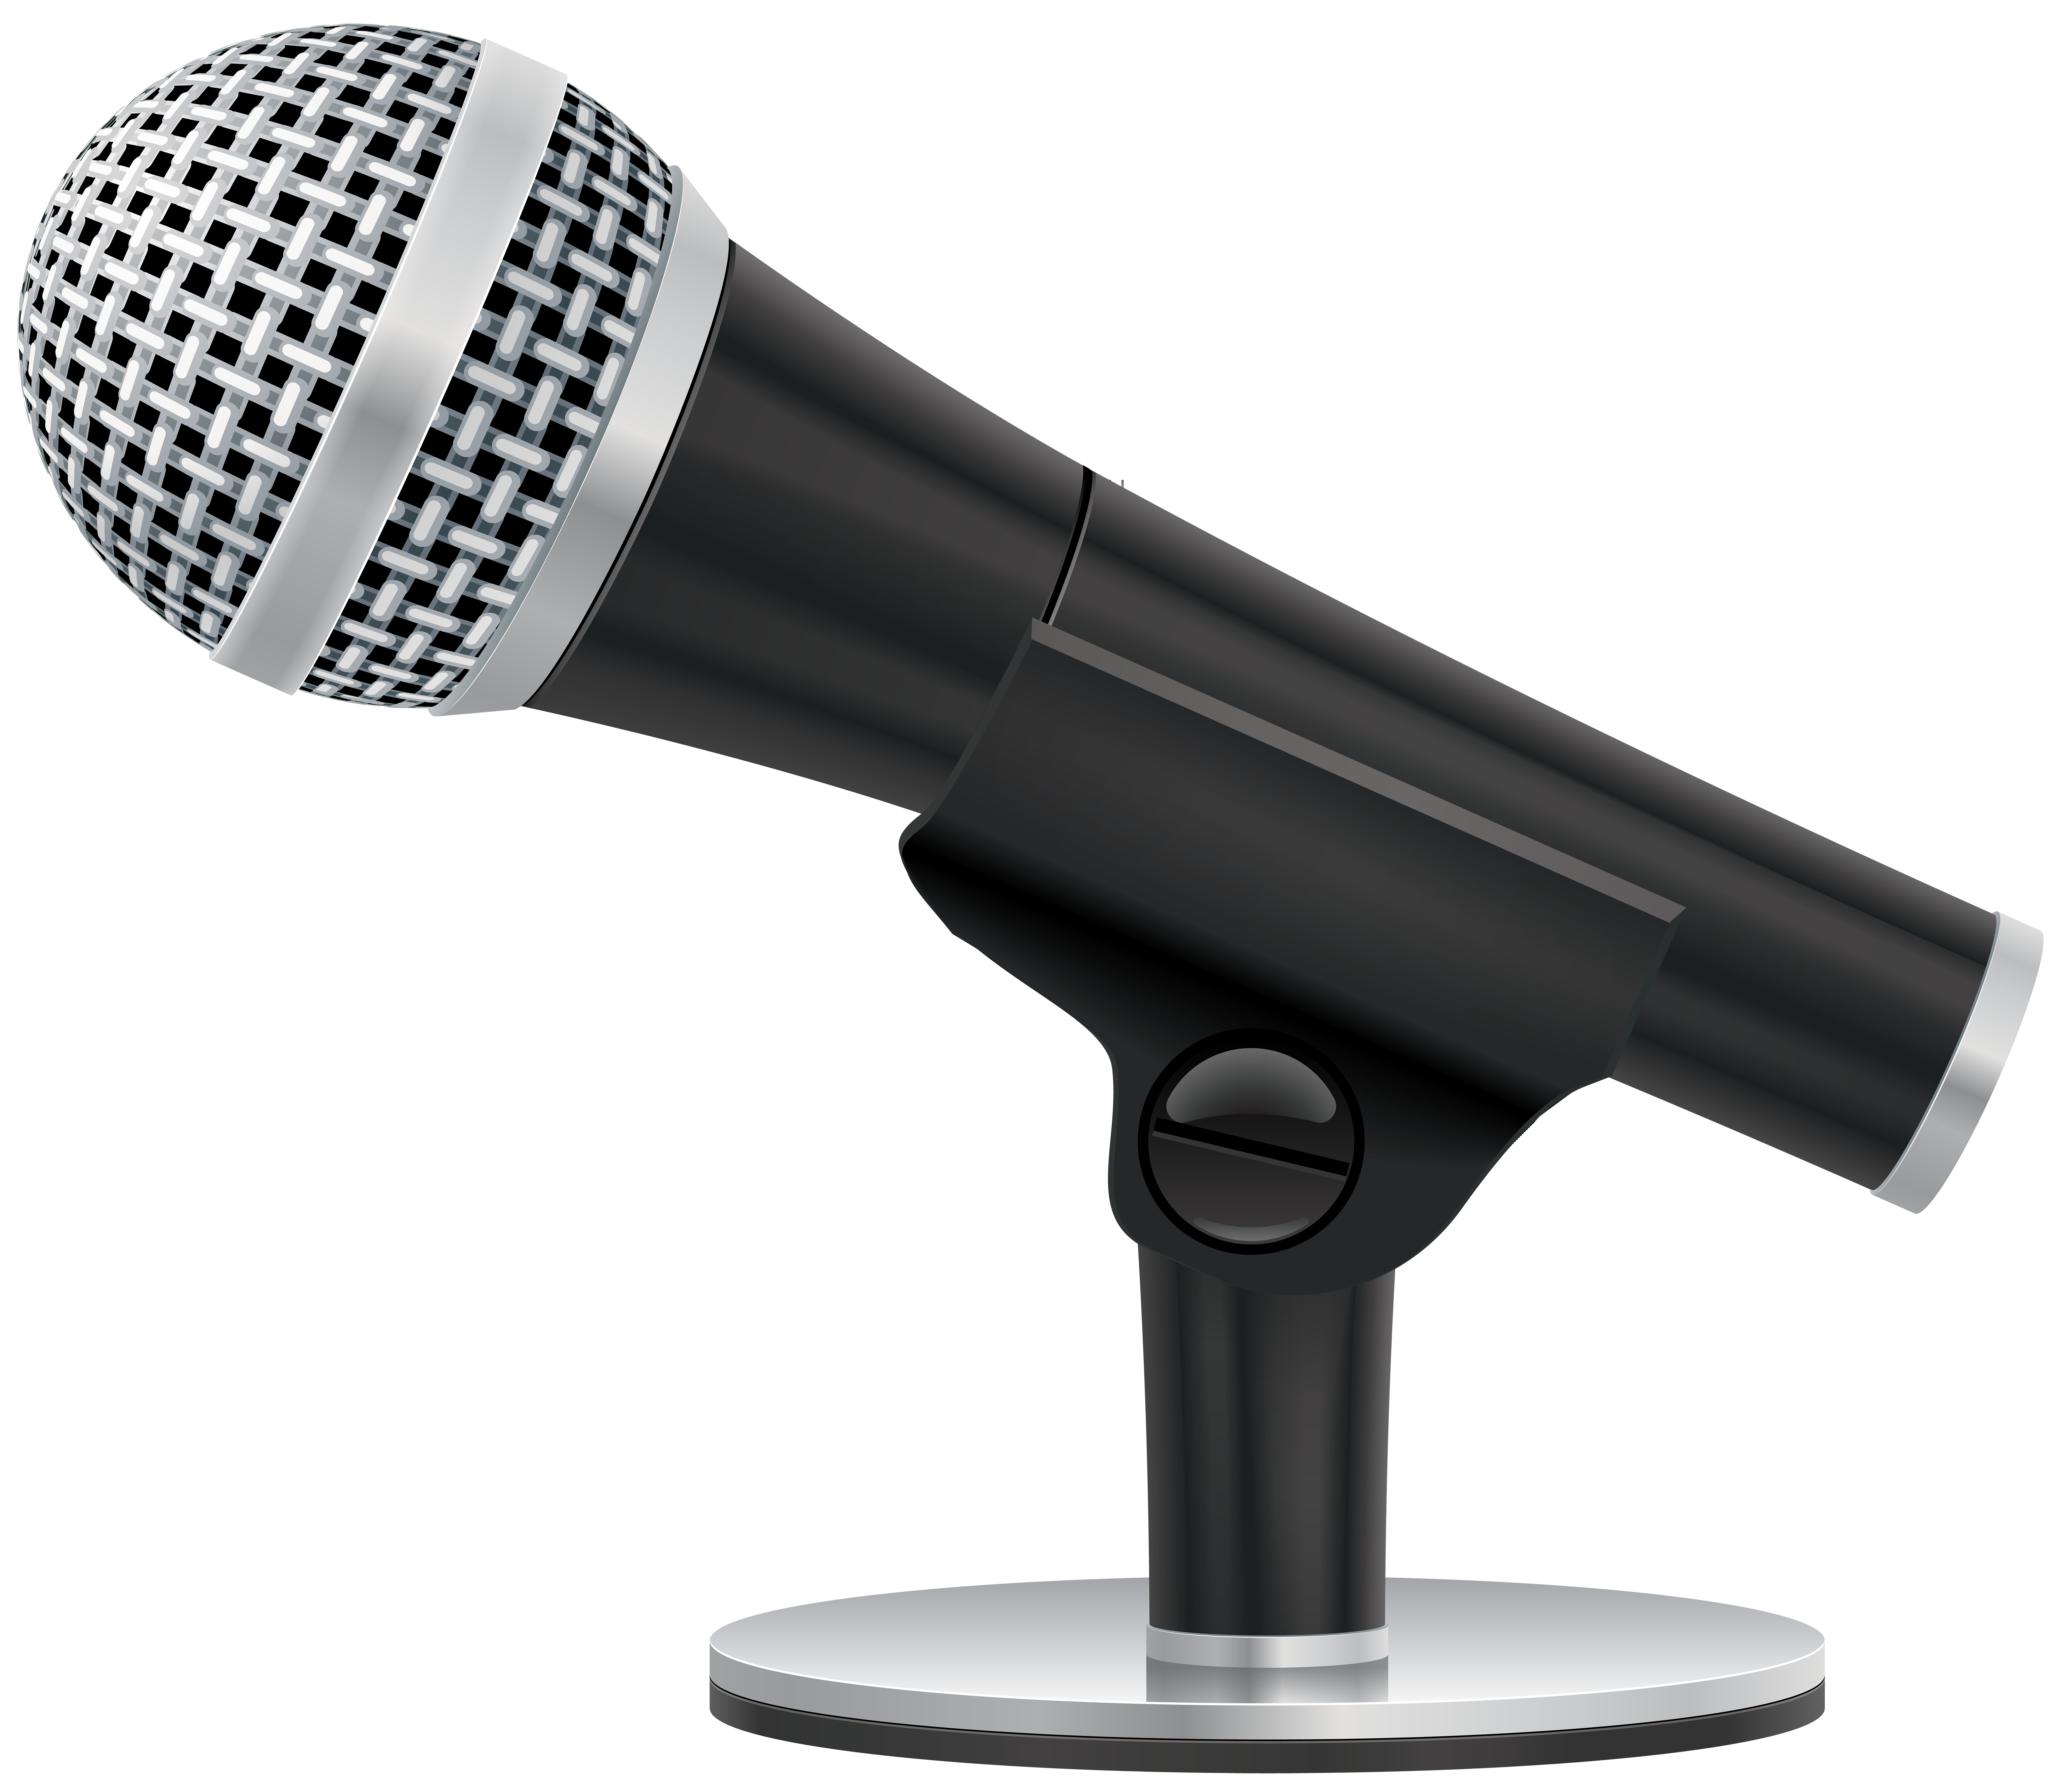 Studio mic png. Microphone clip art image